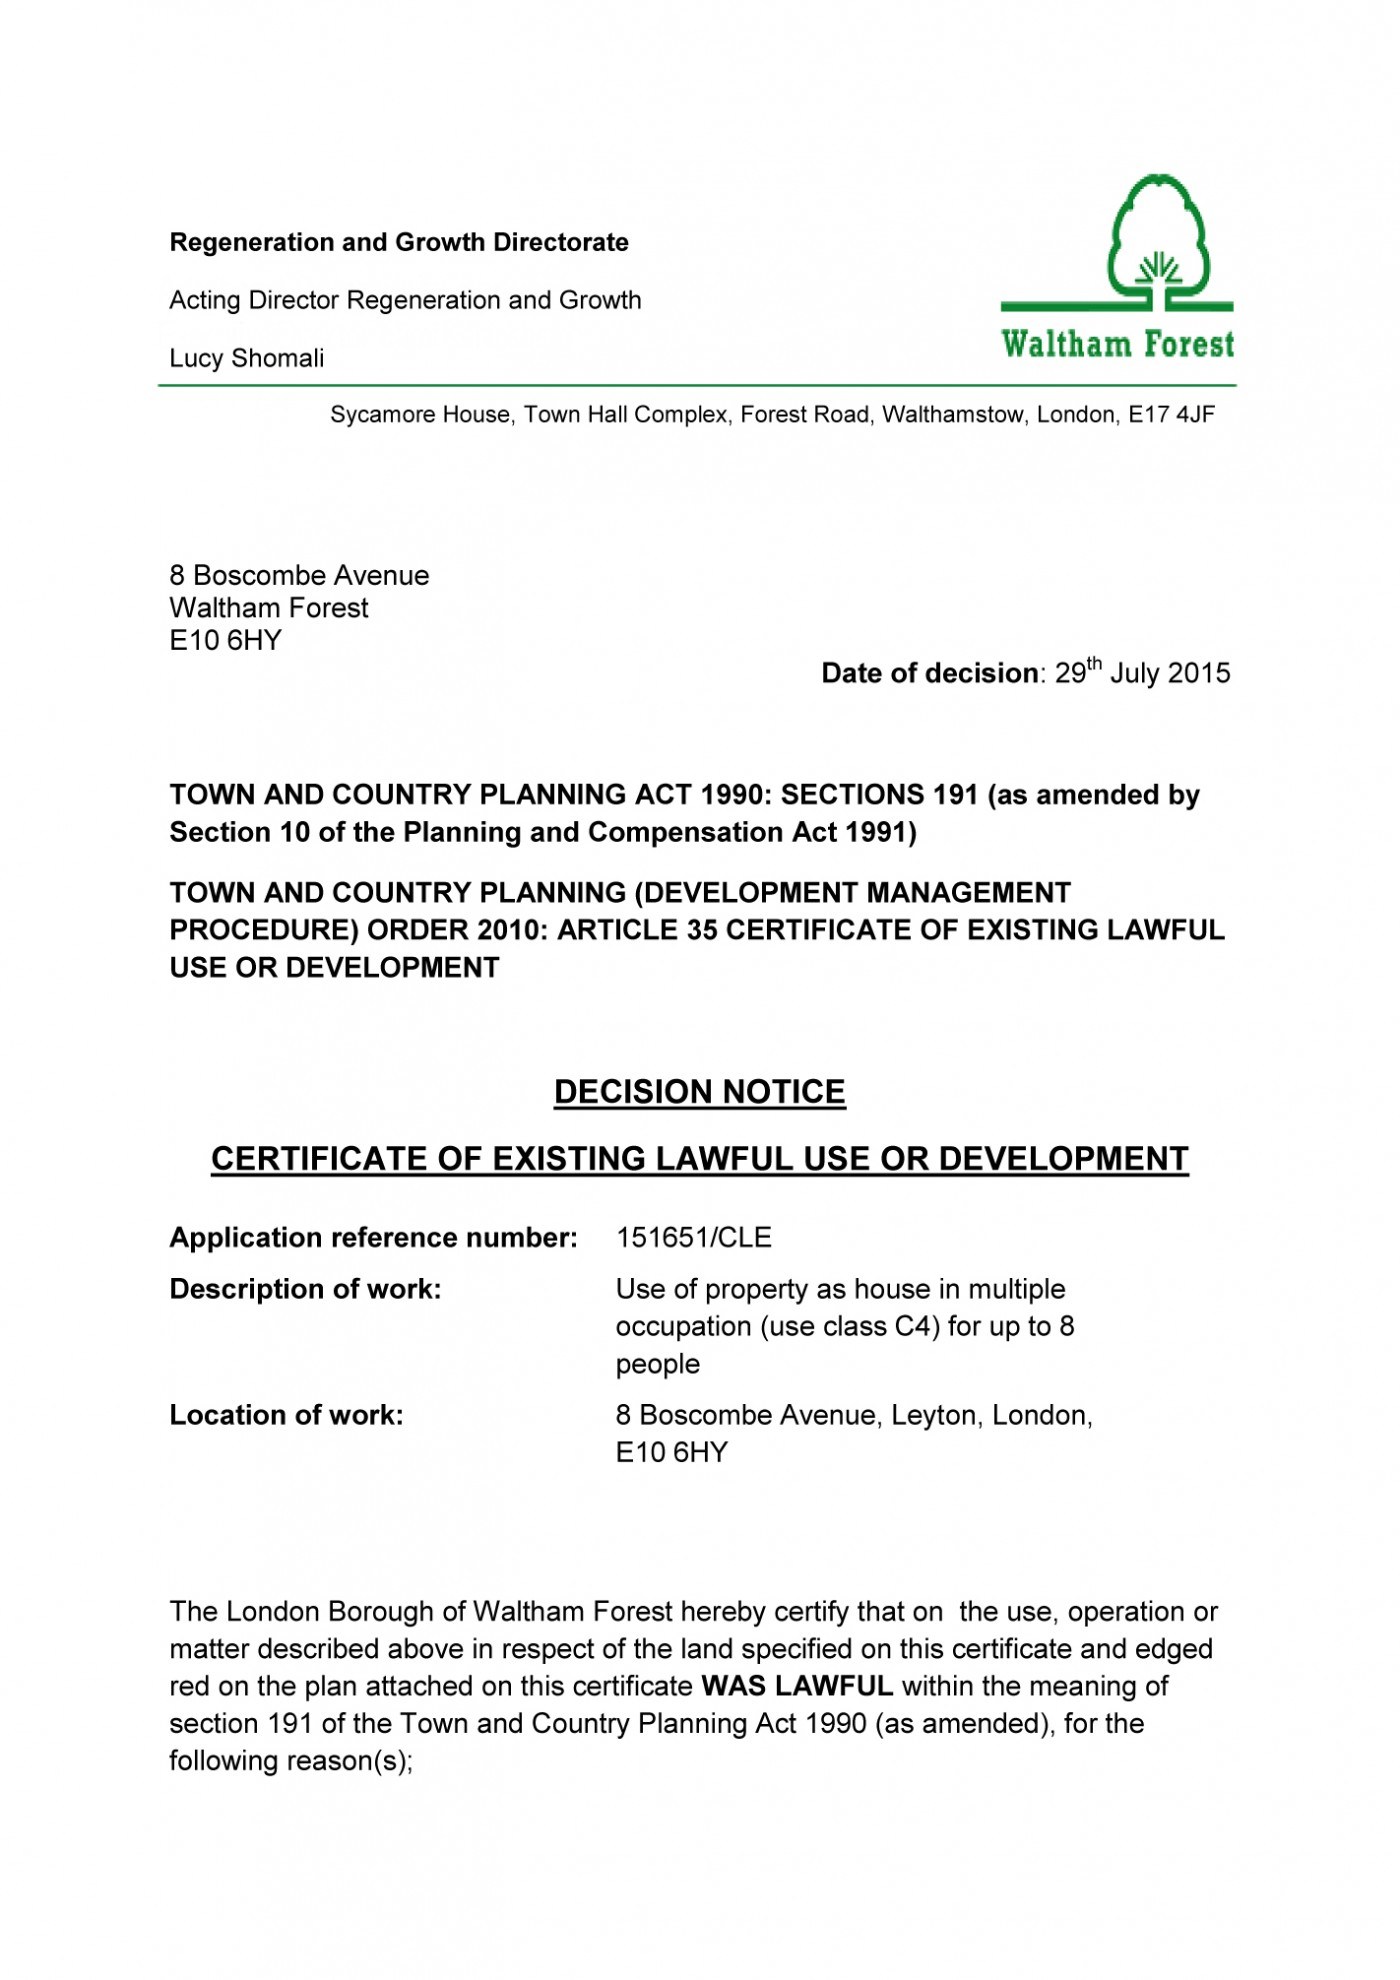 Decision notice - Waltham Forest